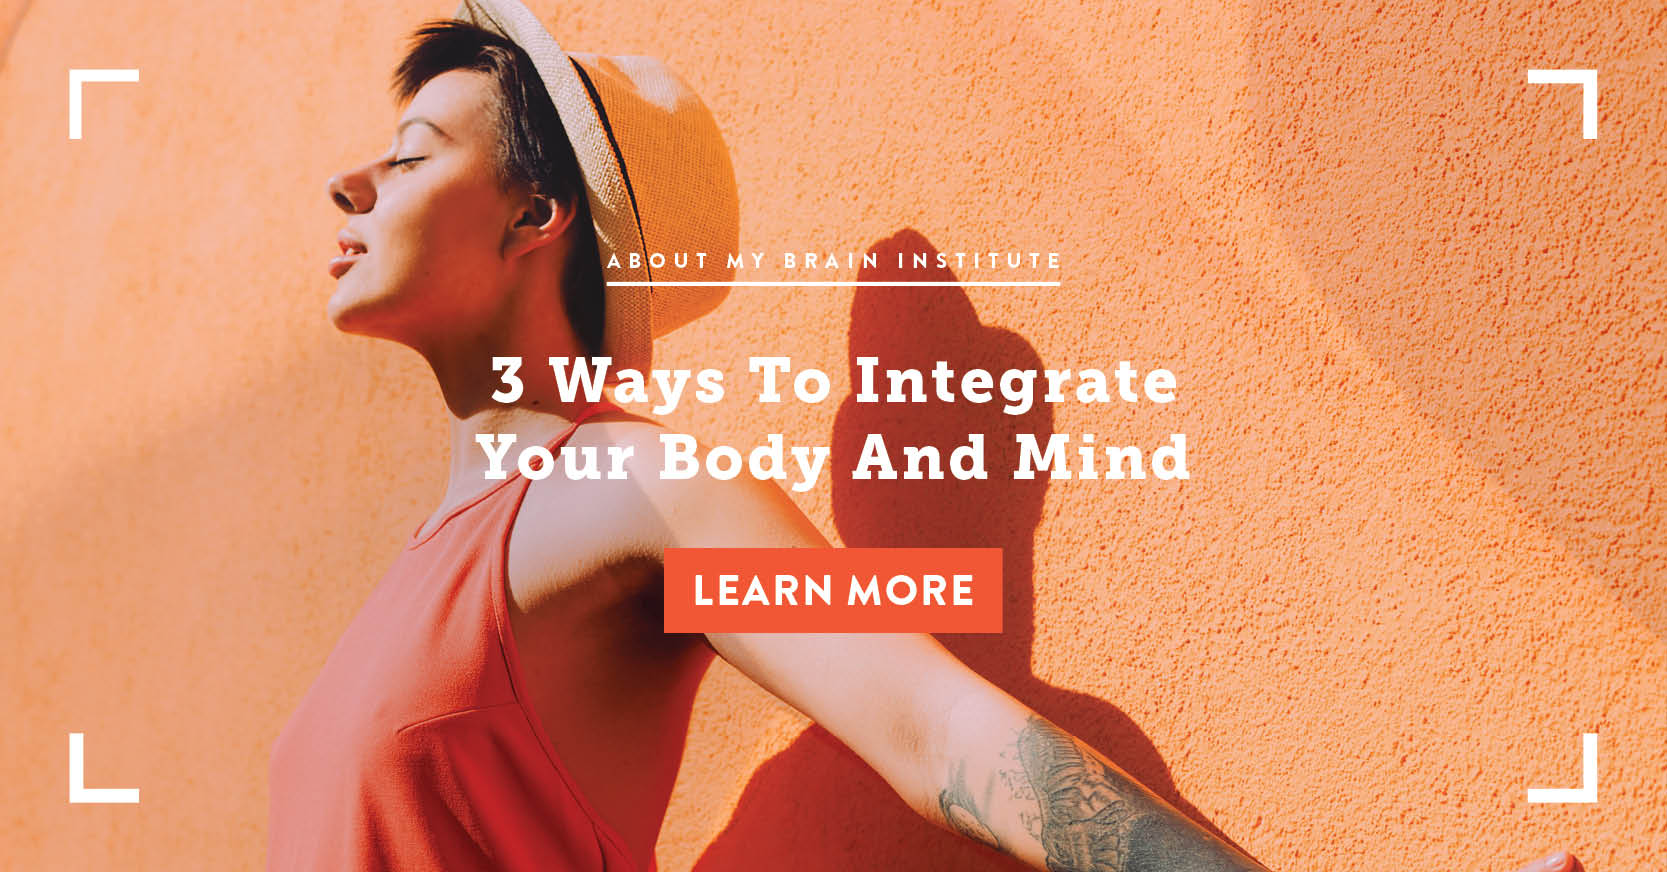 3 Ways To Integrate Your Body And Mind